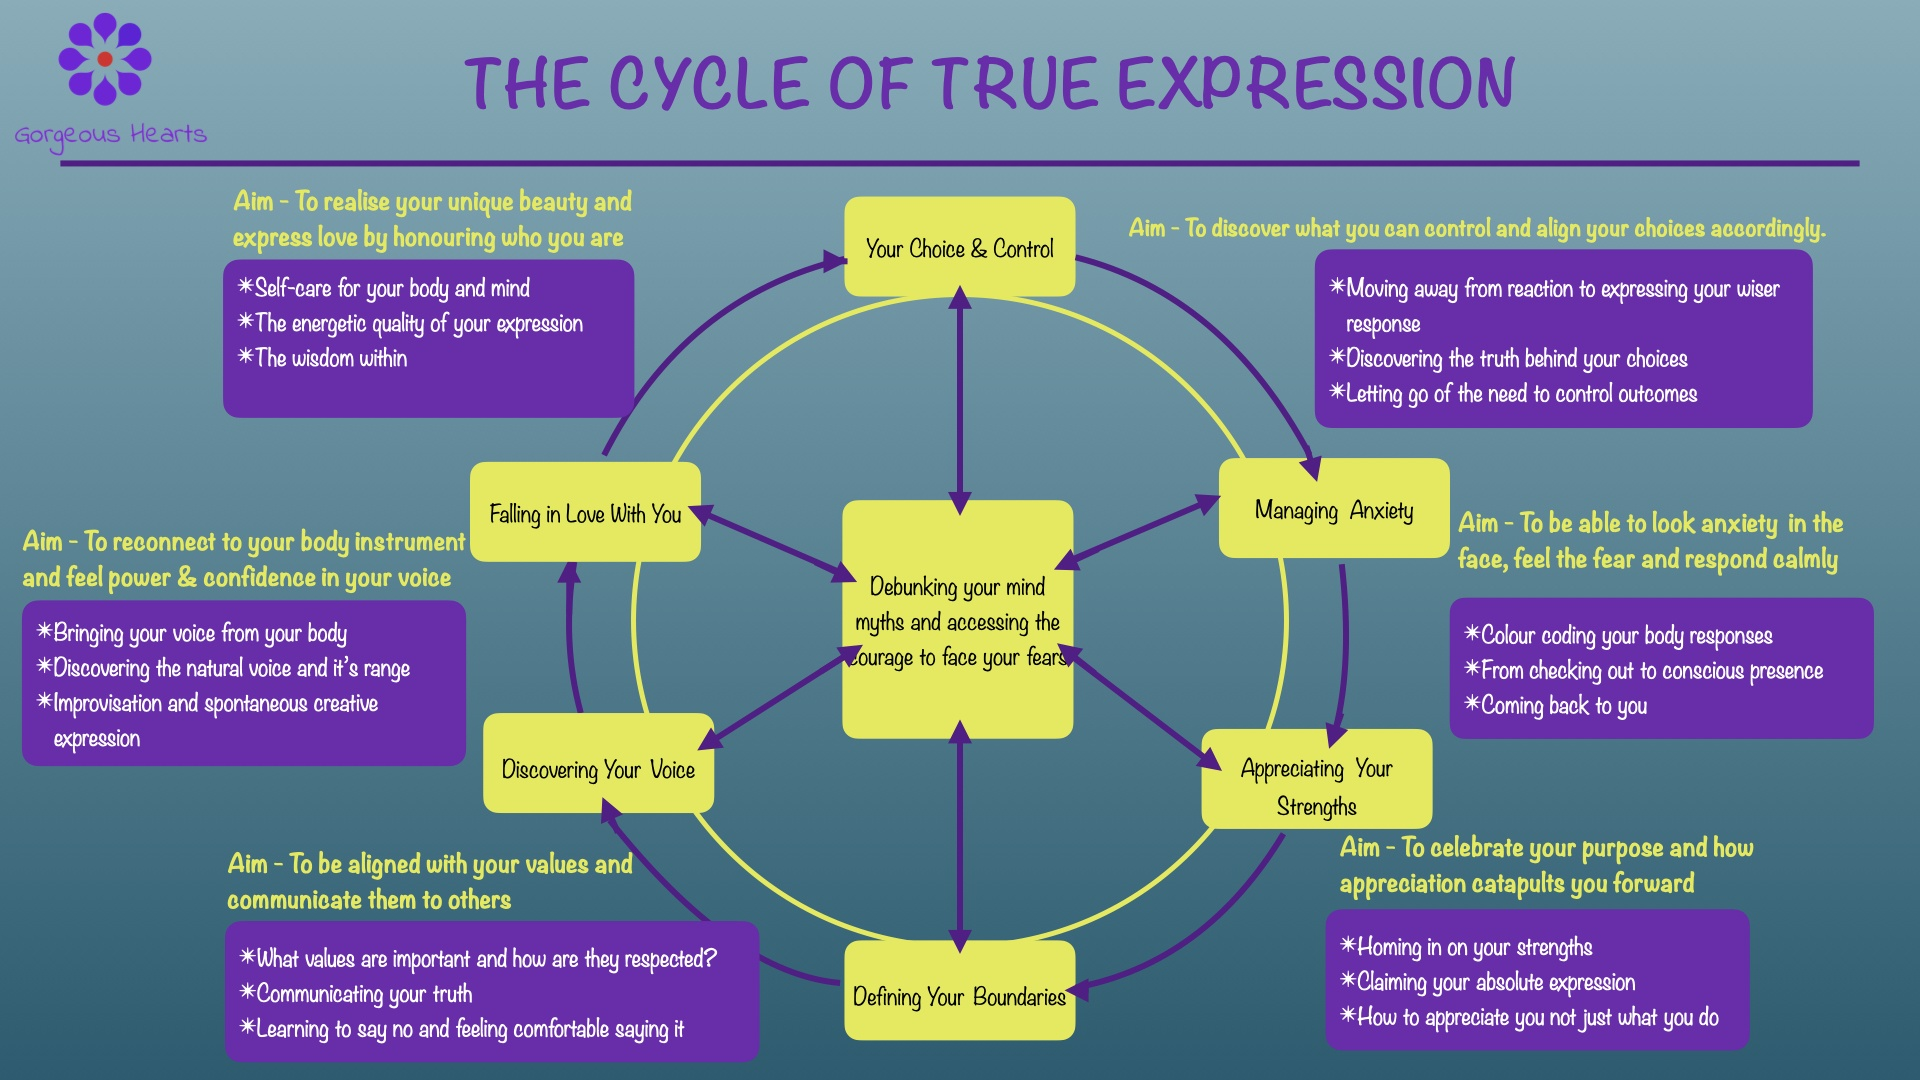 A diagram showing a cycle of steps that leads to authentic expression